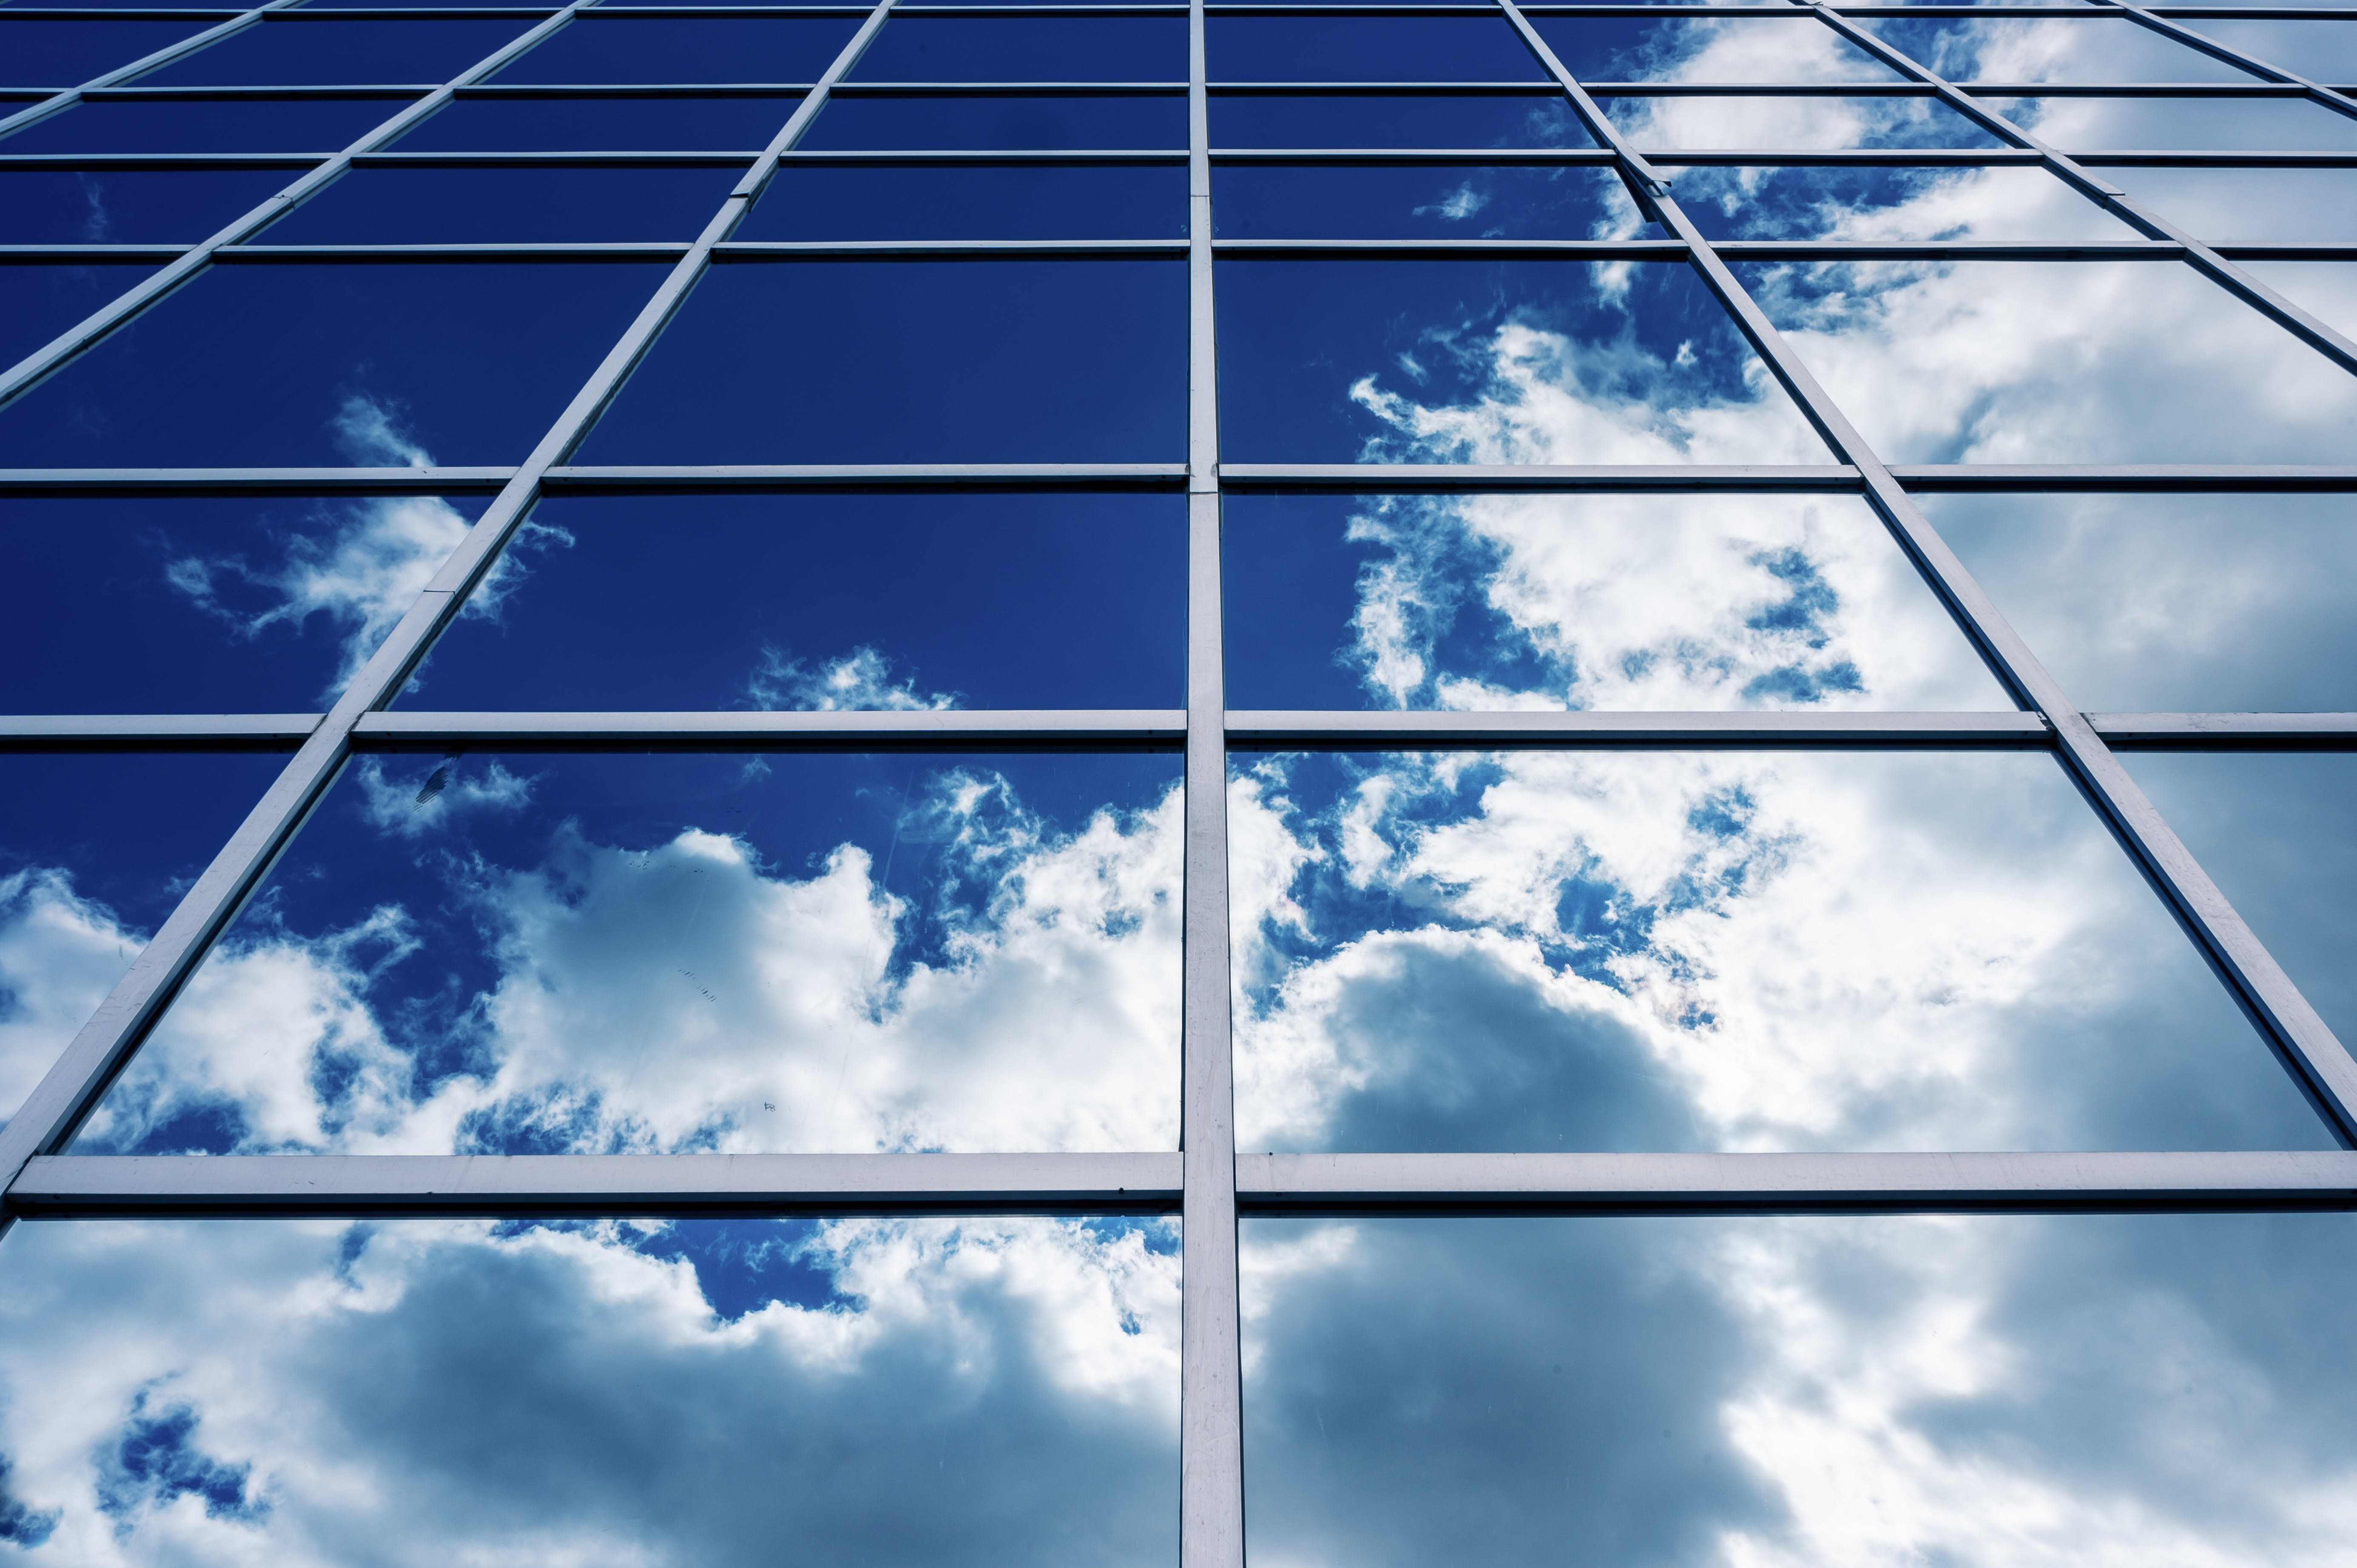 Glass Building With Clouds Reflection